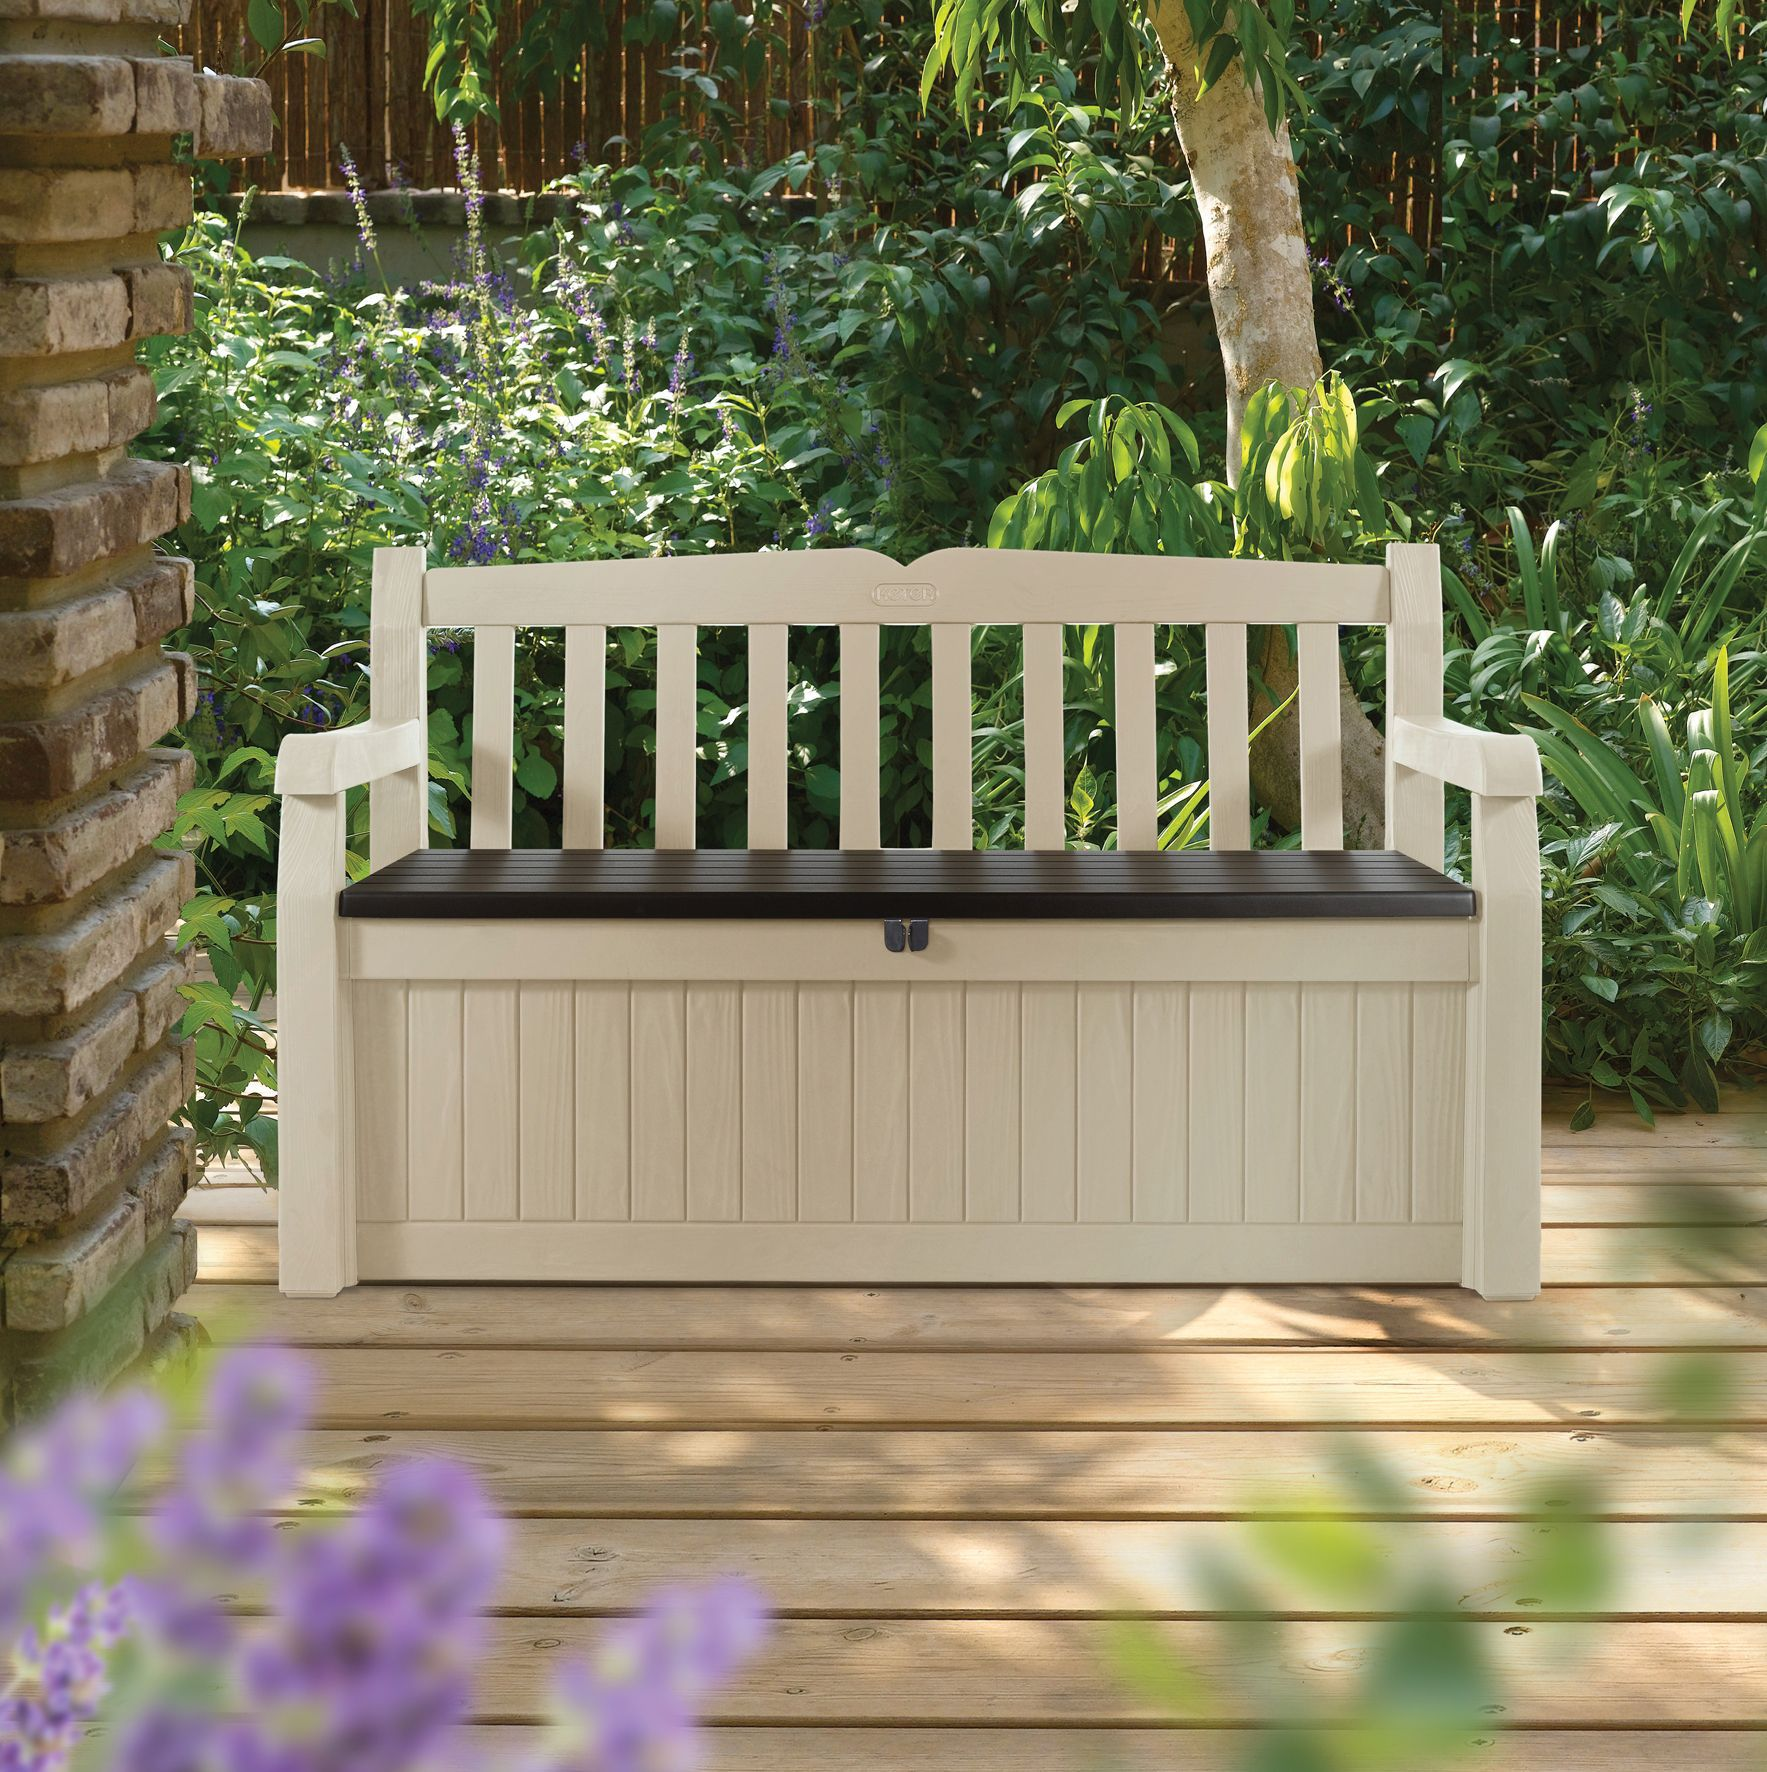 Eden plastic garden storage bench departments diy at b q Storage bench outdoor